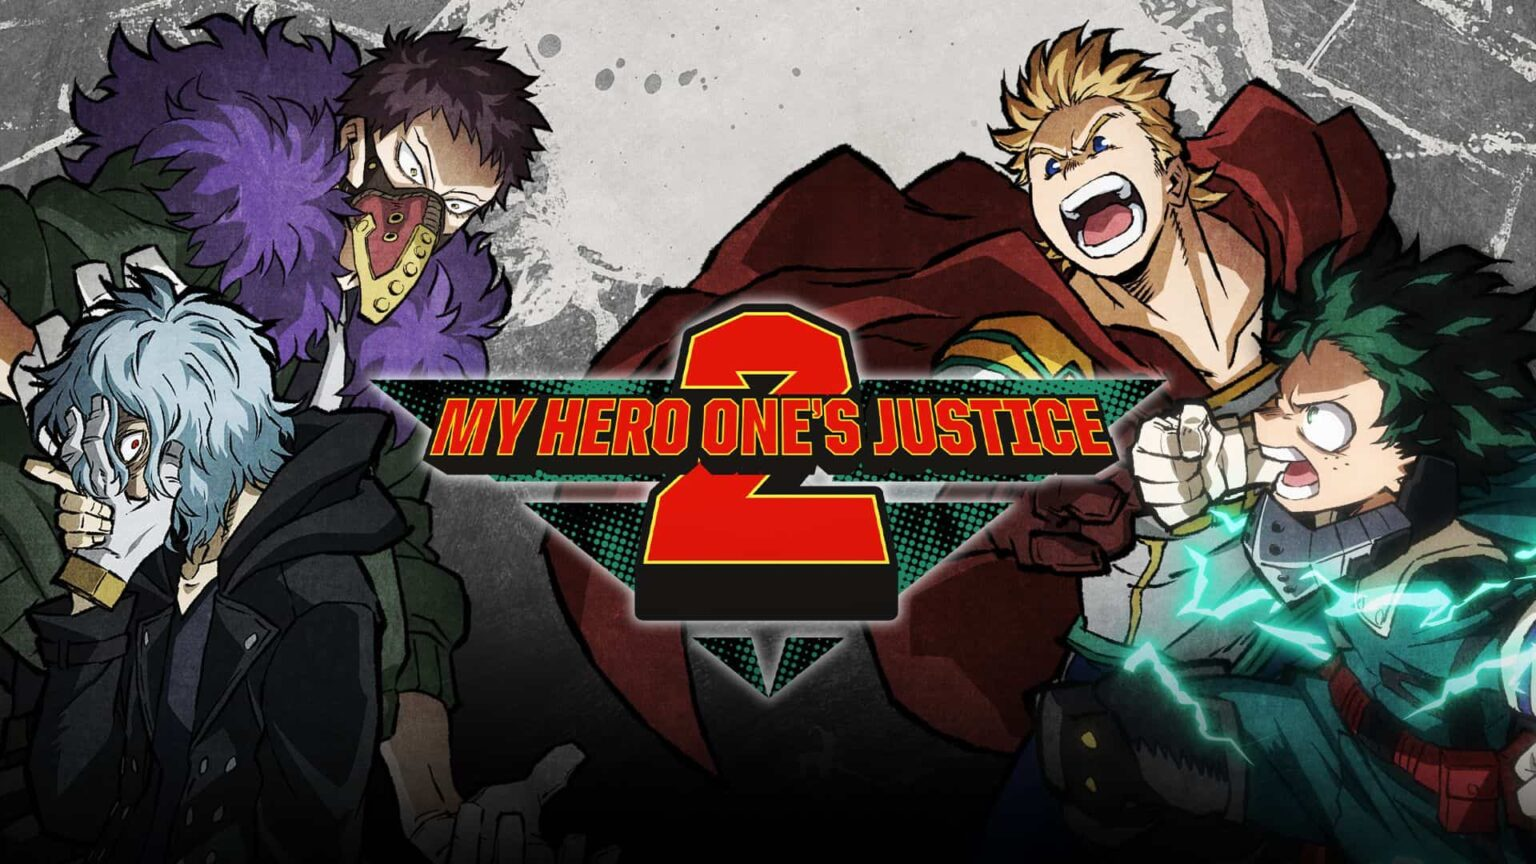 My Hero Ones Justice 2 Full Version Apk Mobile Android Game Setup Free Download